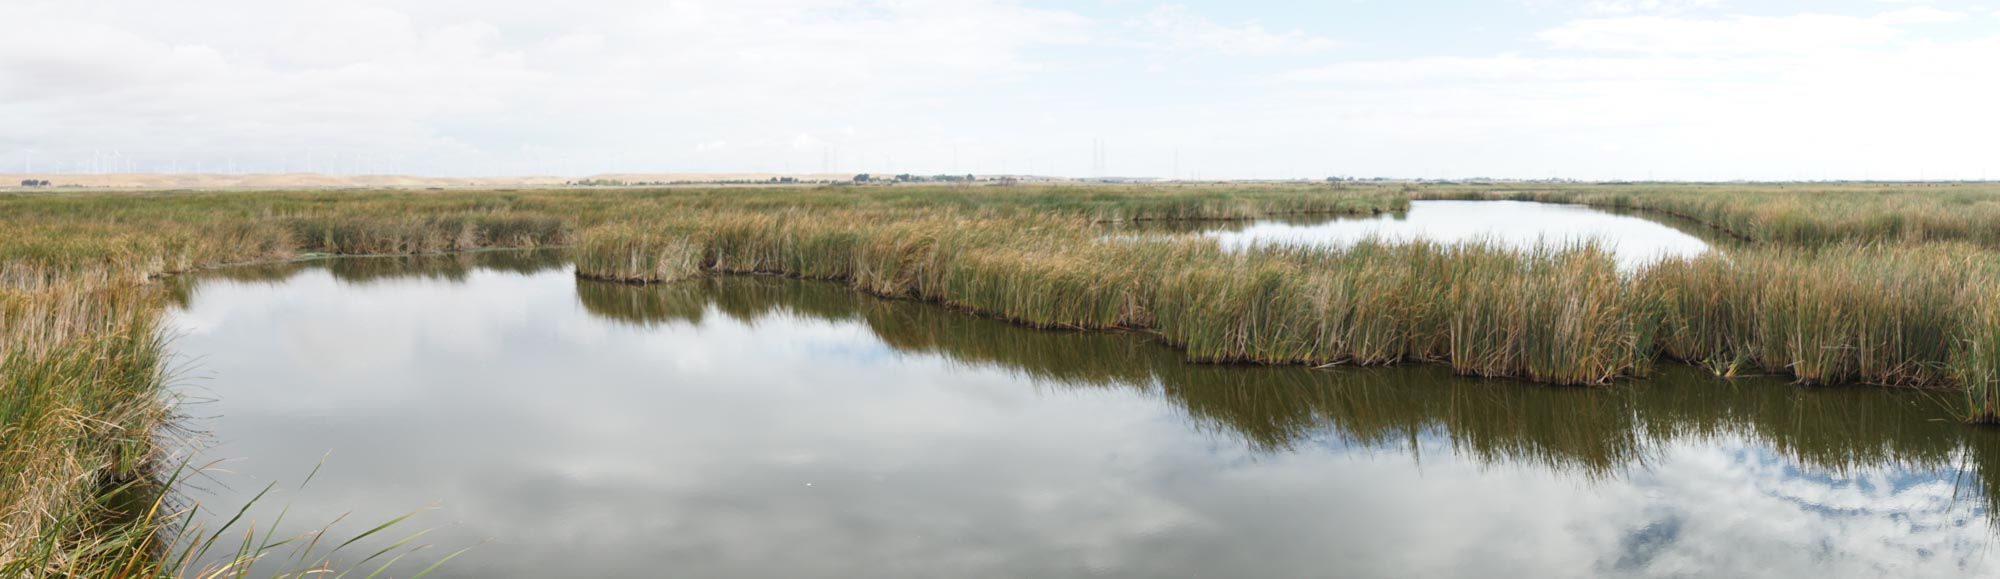 View of delta with water and grasses